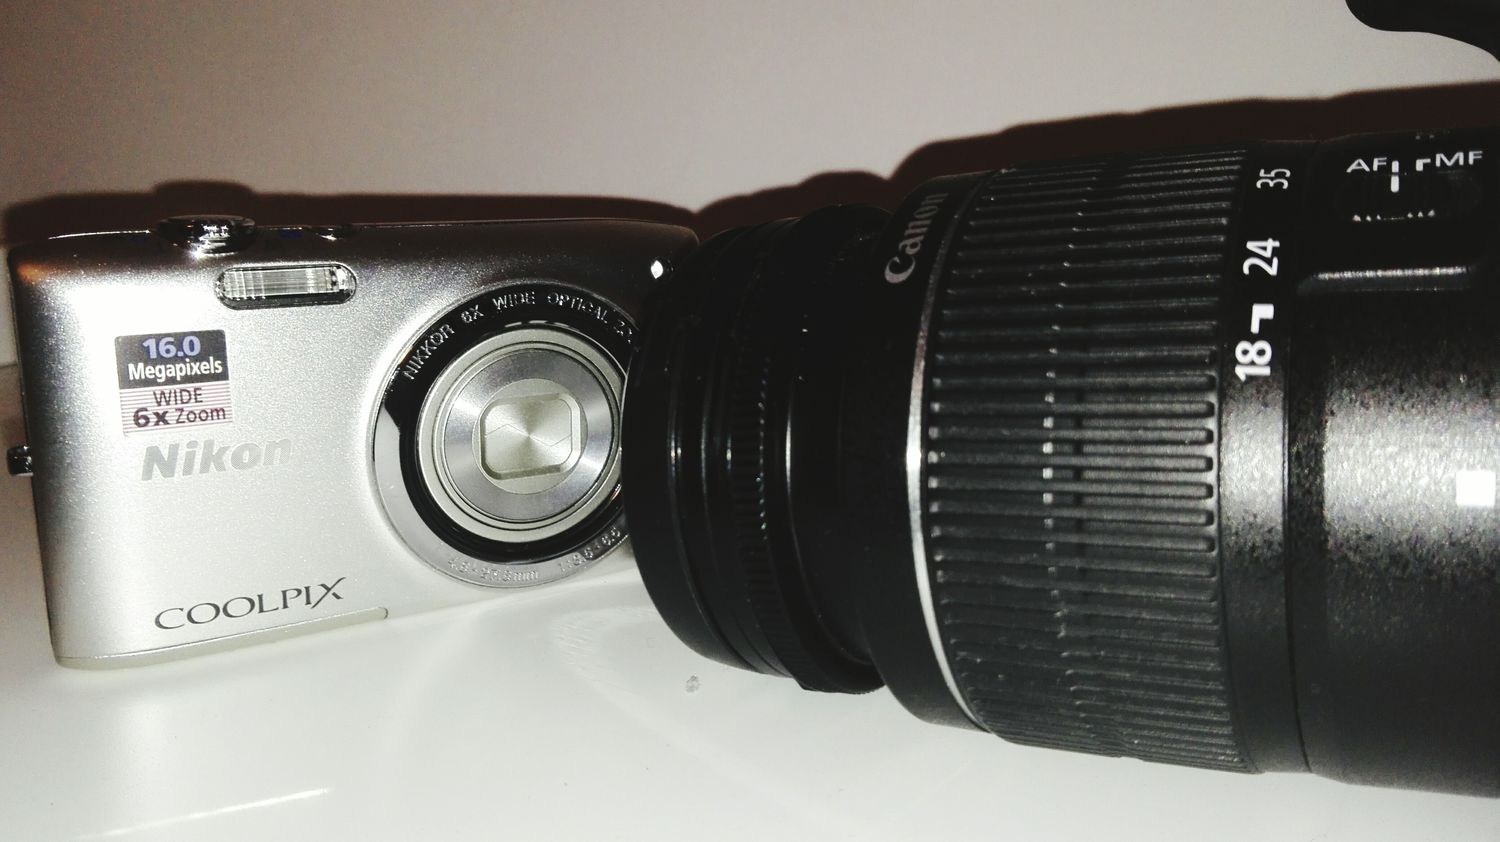 That moment when your first camera meets your new camera 📷 Lieblingsteil Nikon Canon Nikon Vs Canon Old Object New Object First Camera Old Memories Old Meets New New Memories Long Trowback Favoritethings